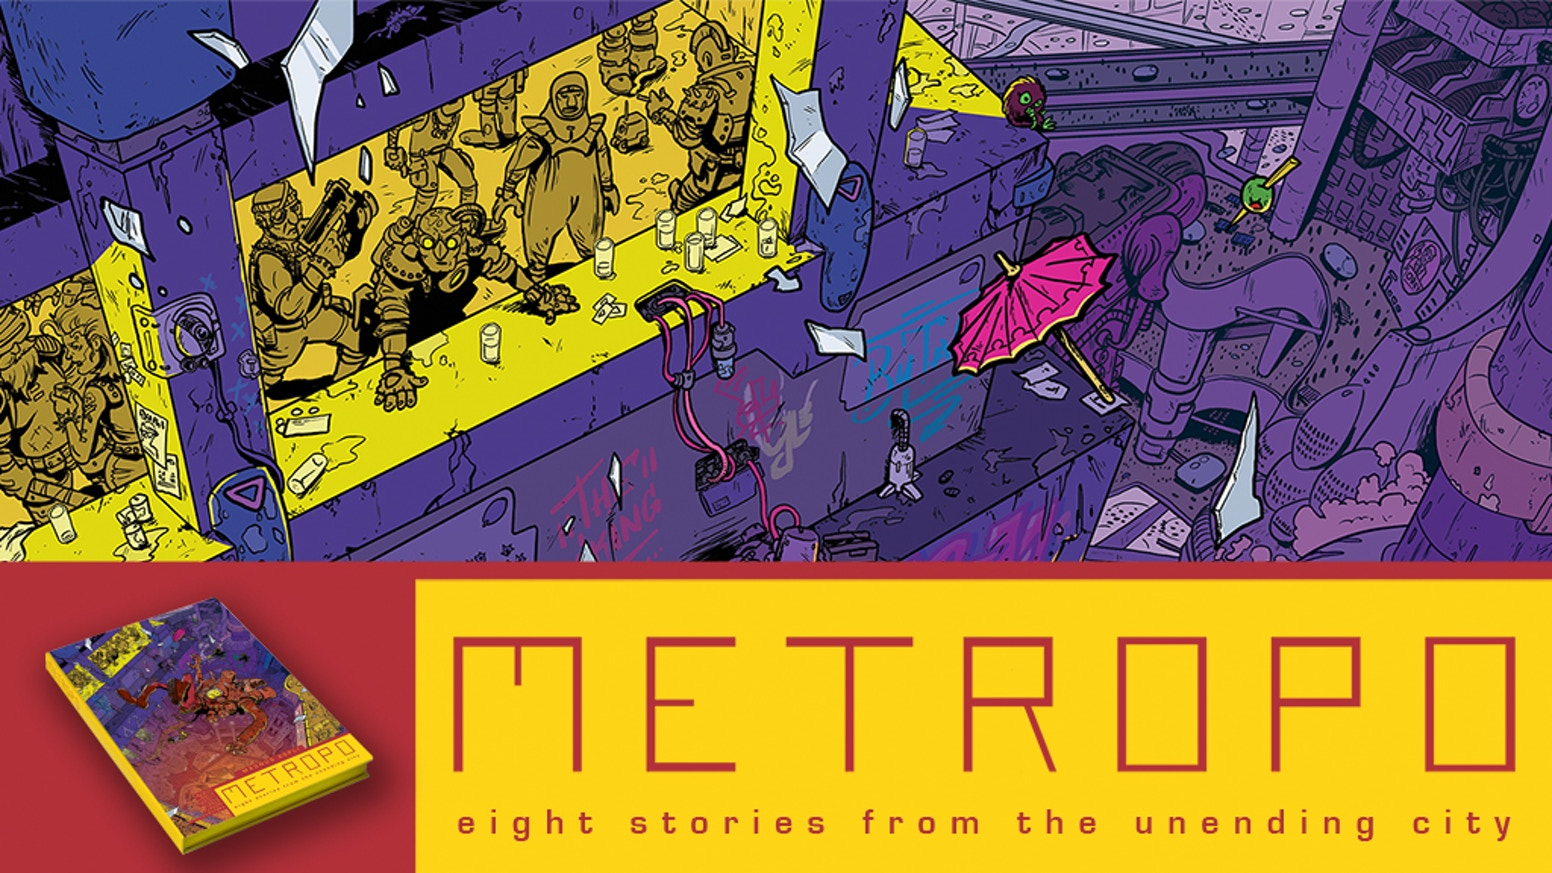 Eight stories from the unending city, taking us into the heartache and struggle of the denizens—artificial or otherwise—of Metropo.